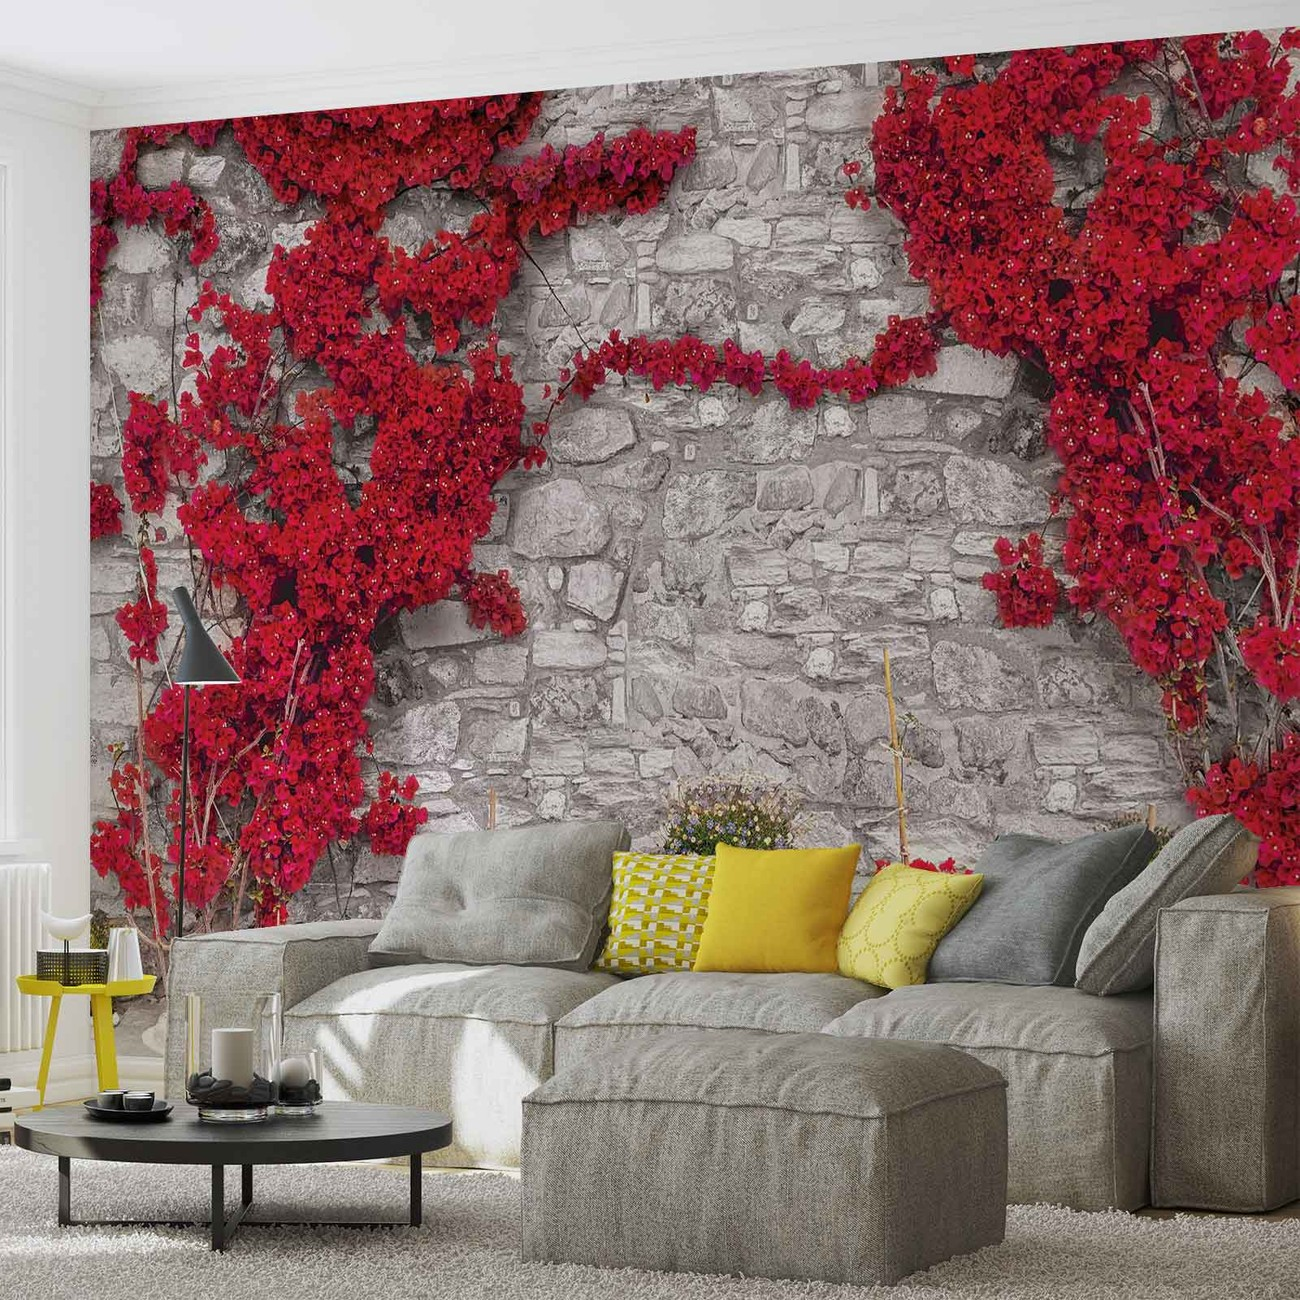 fototapete tapete rote blumen stein mauer bei europosters kostenloser versand. Black Bedroom Furniture Sets. Home Design Ideas